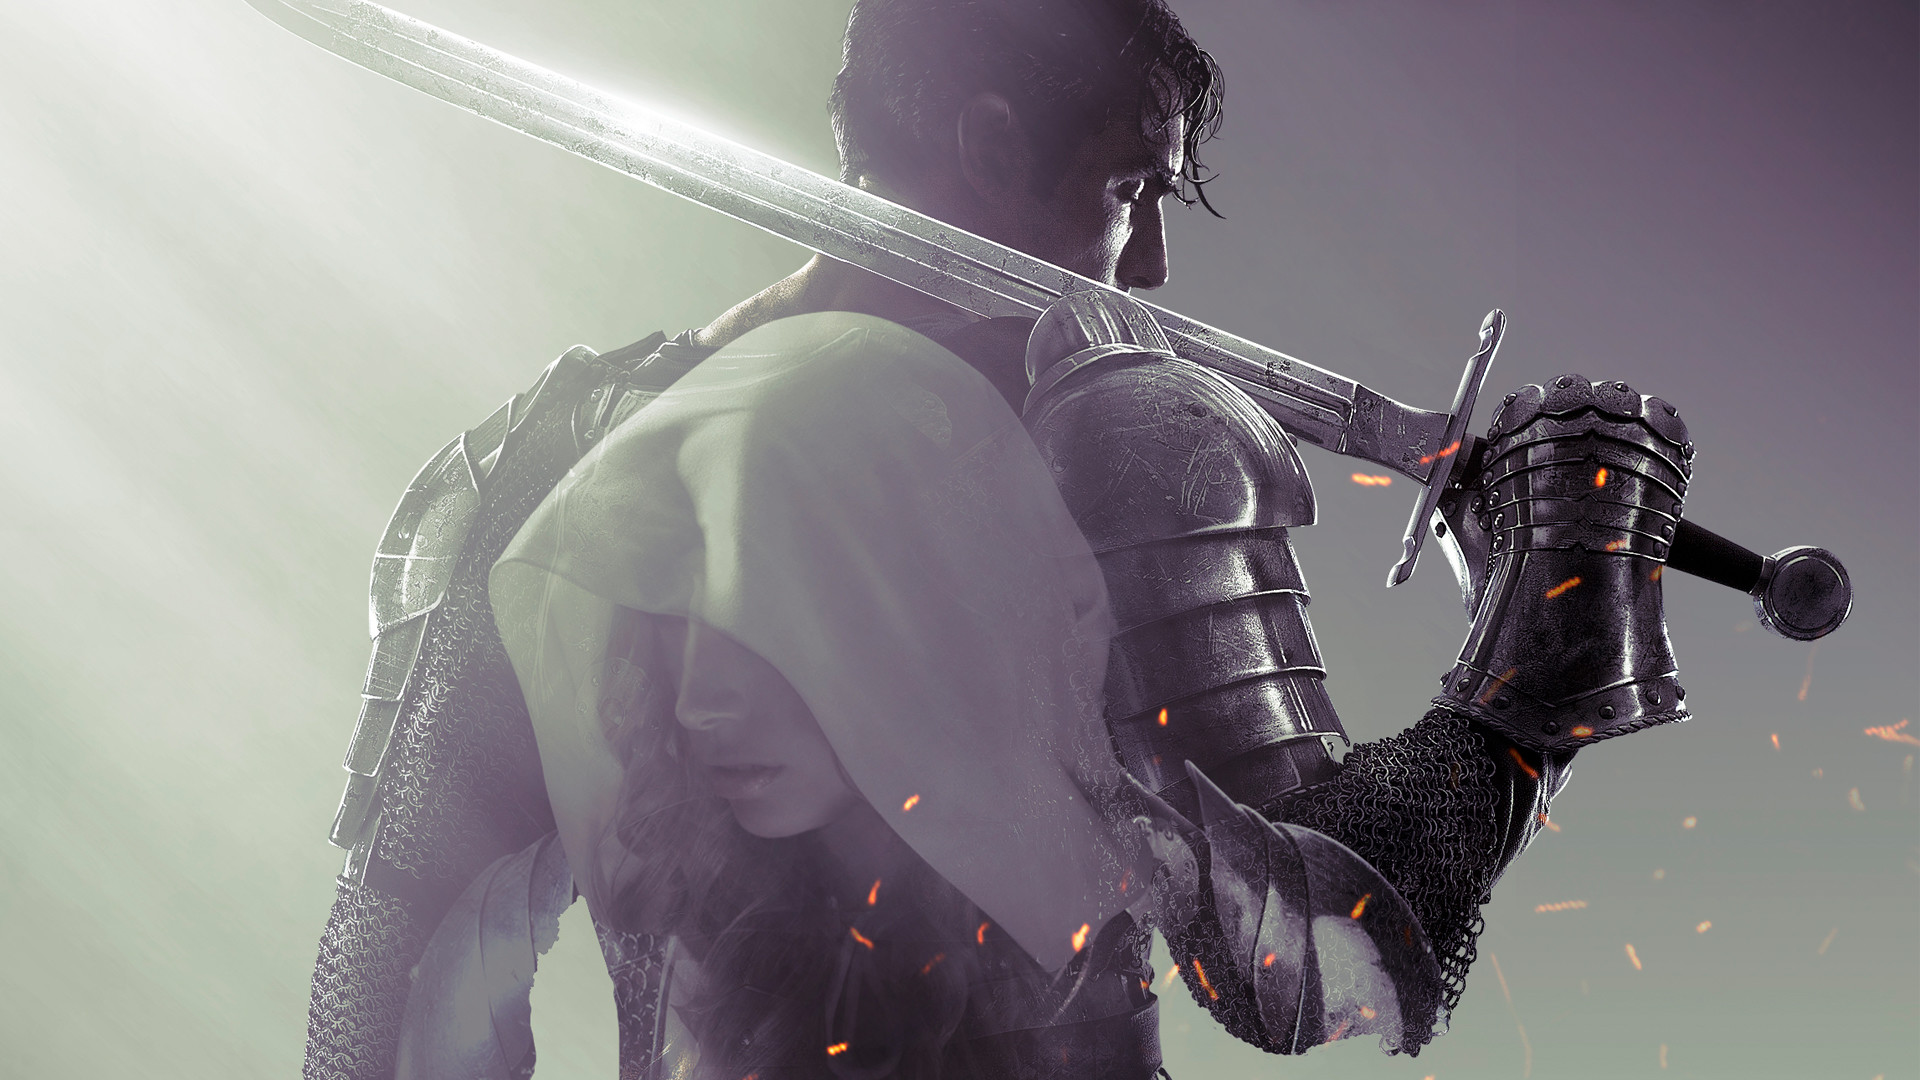 Cool Sword Wallpapers (60+ images)